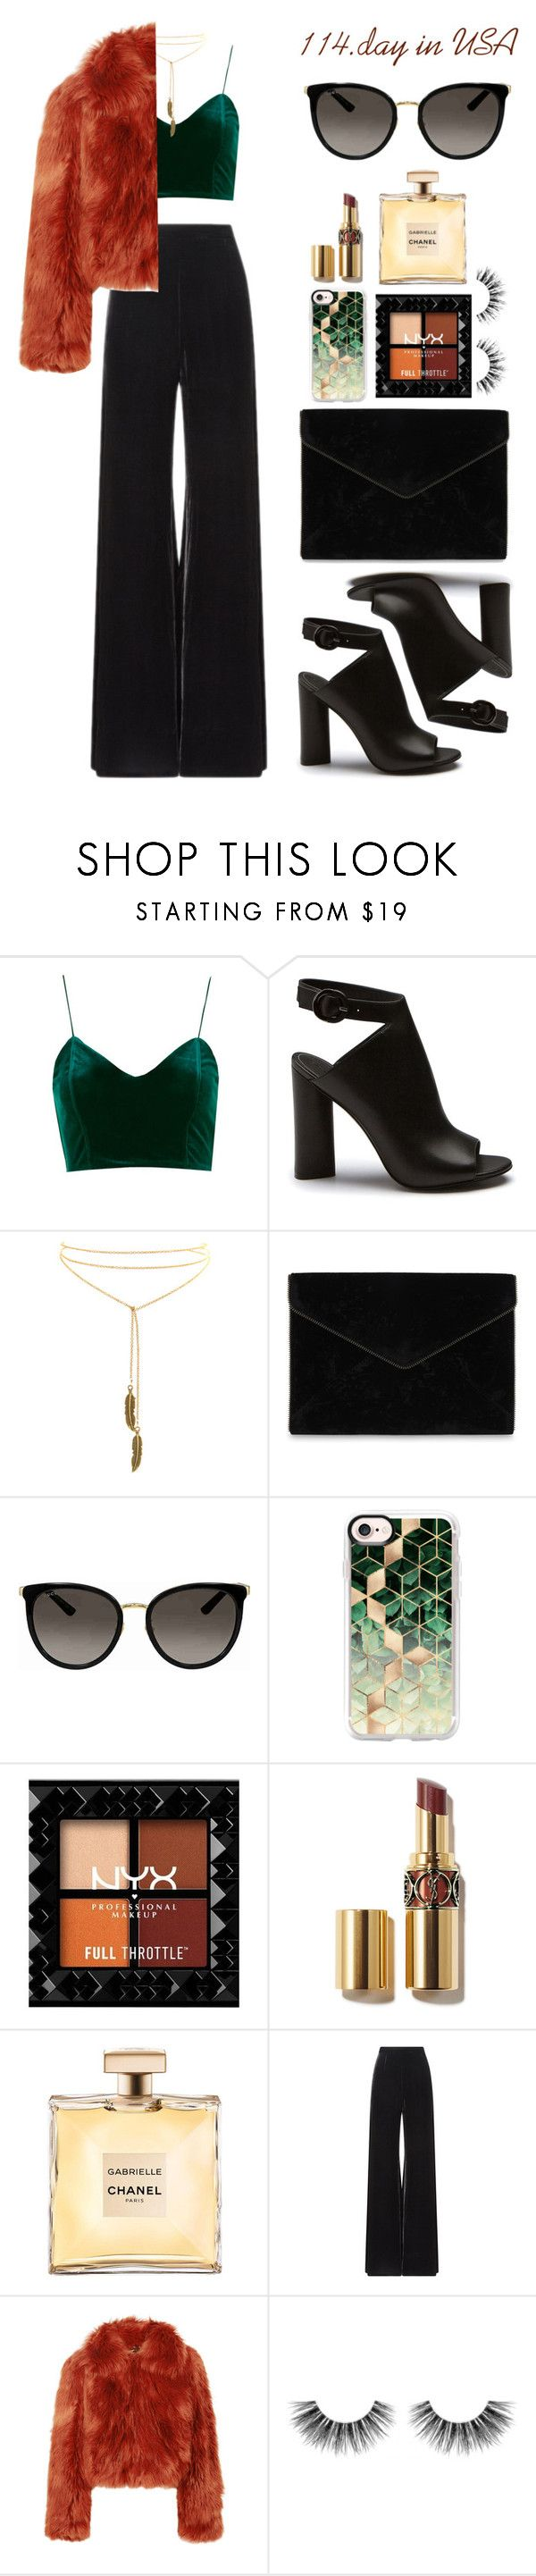 """""""114.day in USA"""" by elizcoco ❤ liked on Polyvore featuring Rebecca Minkoff, Gucci, Casetify, Roland Mouret, Maison Margiela and Velour Lashes"""